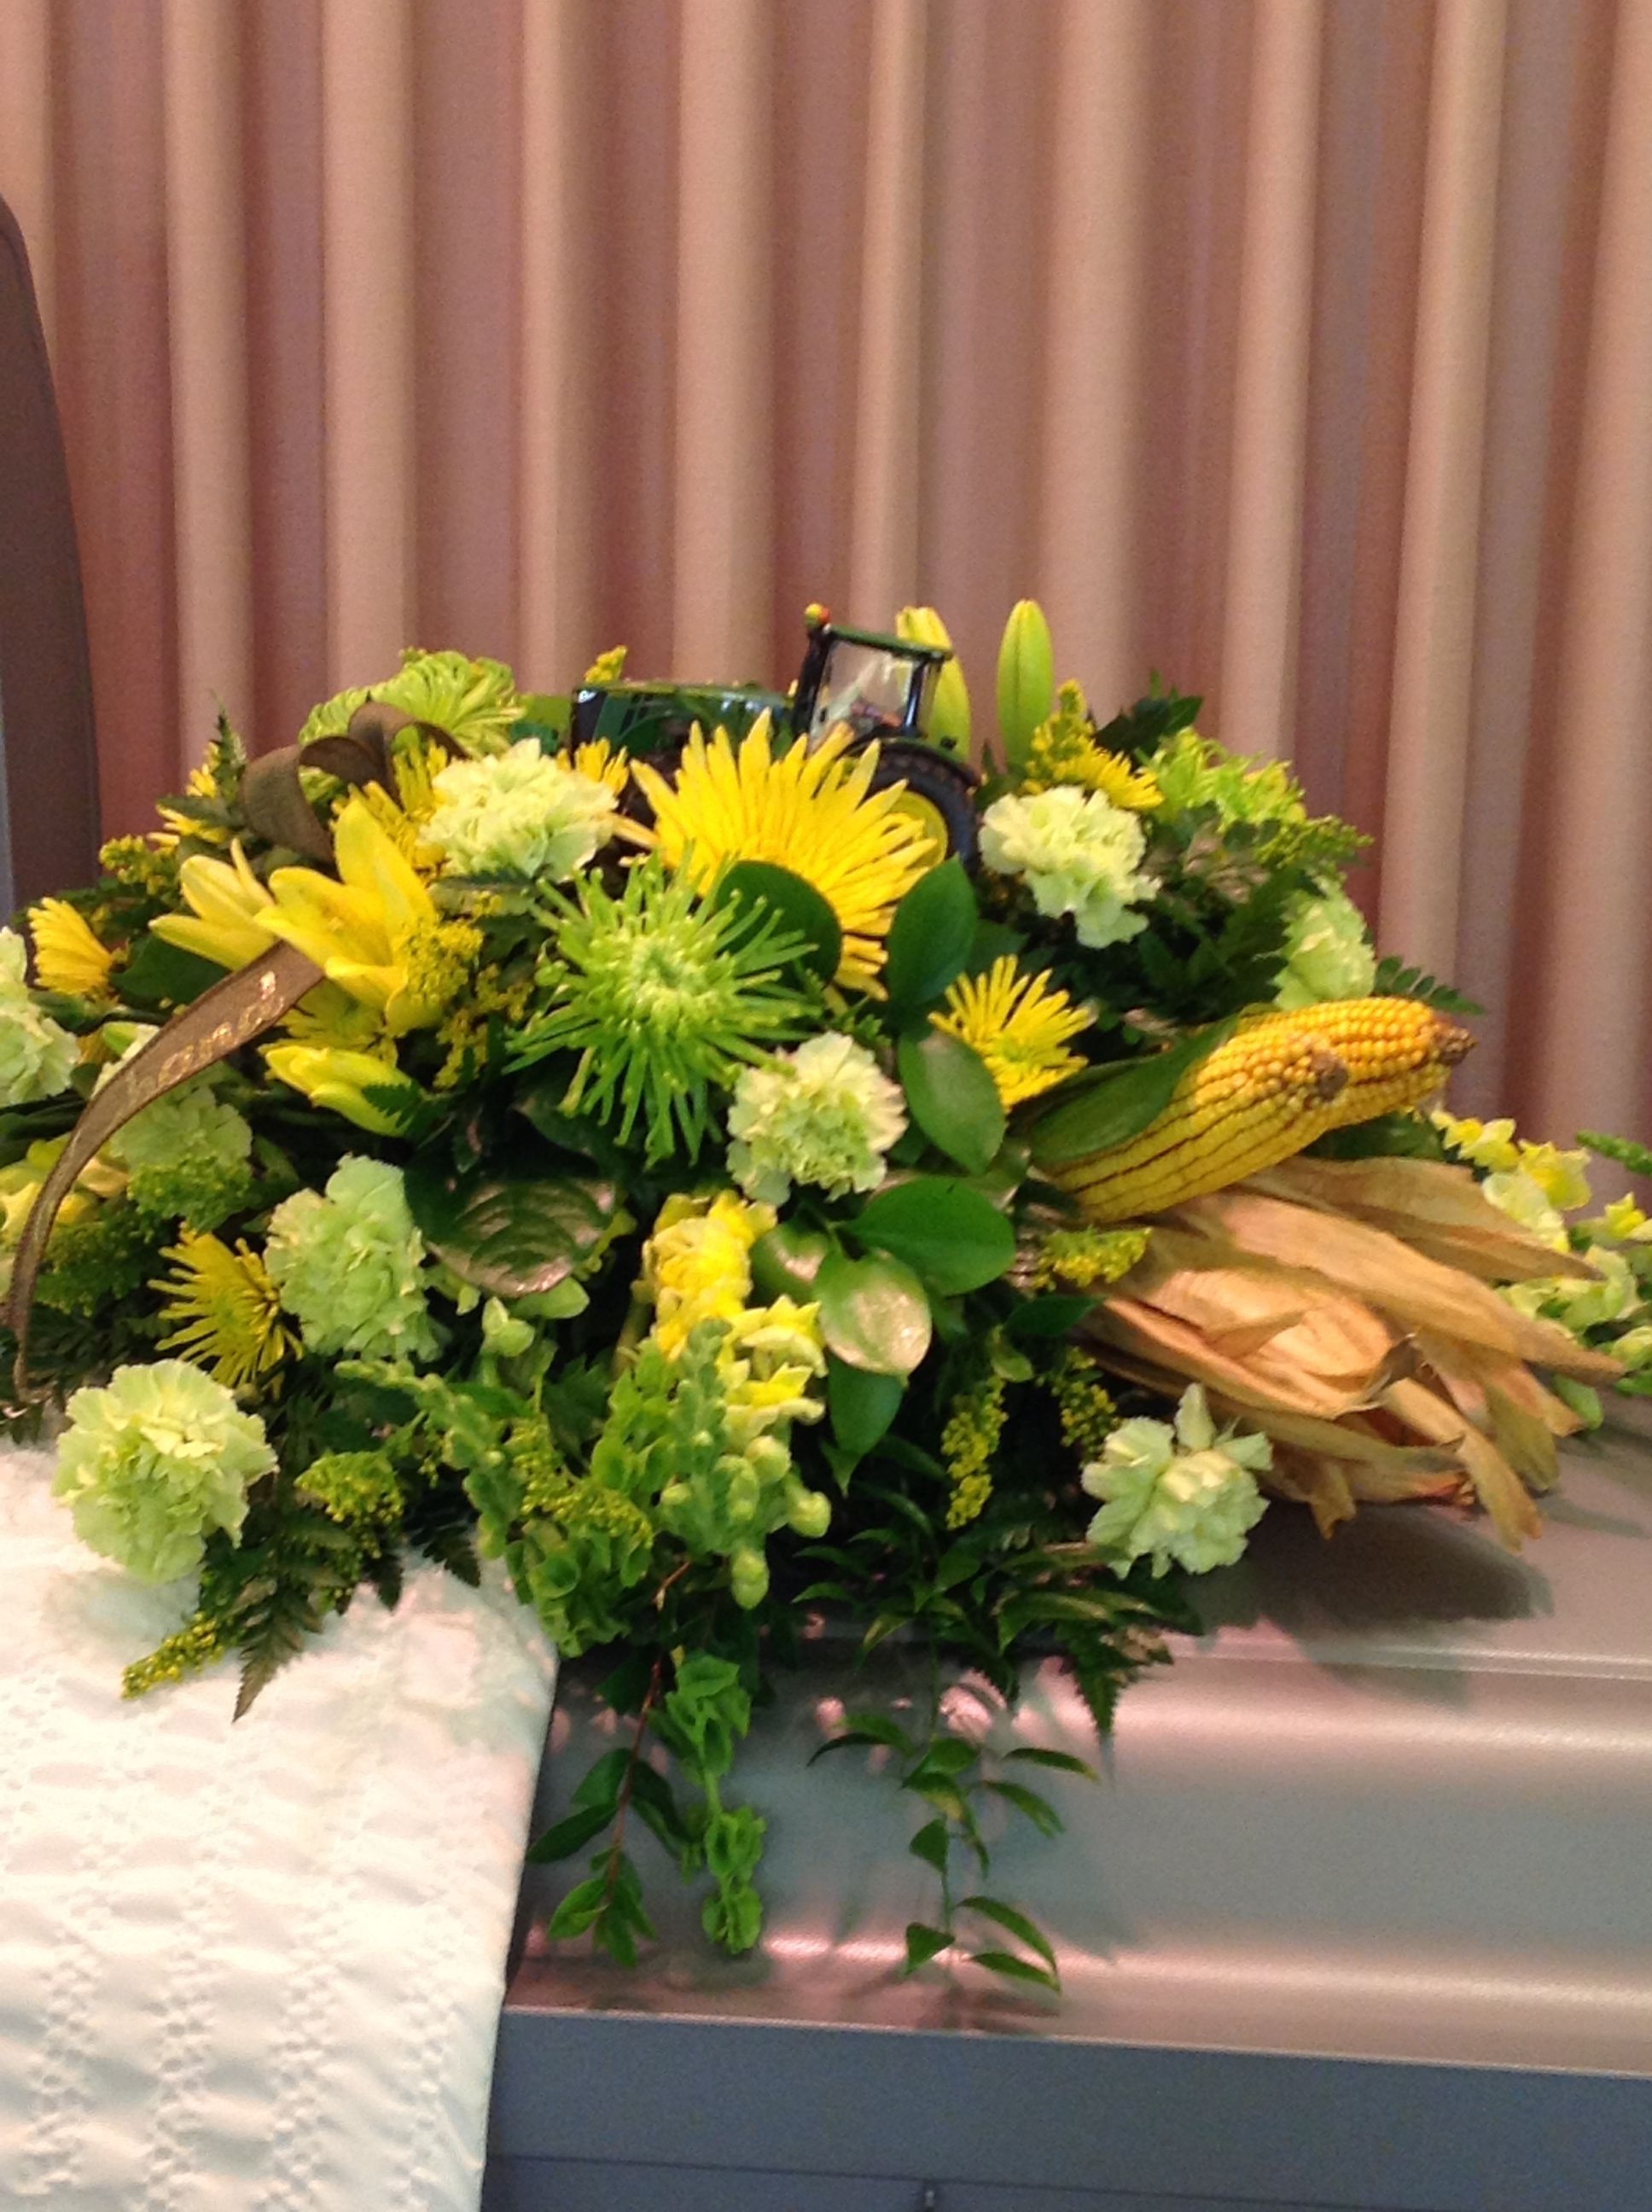 Funeral Arrangement With John Deere Tractor And Corn In It Green